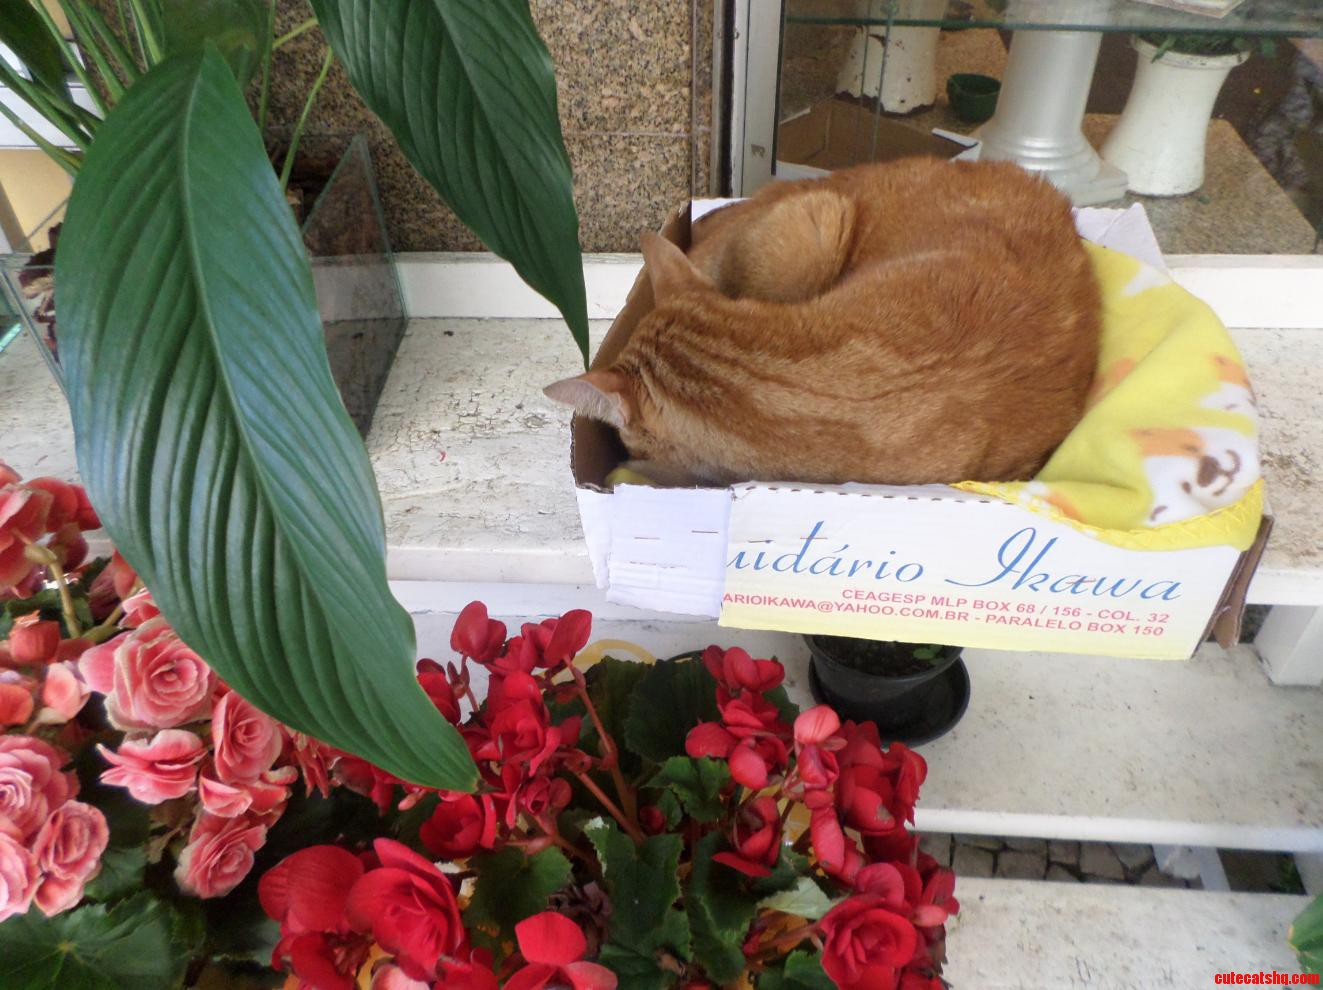 A Shopkeeper Was Kind Enough To Put A Box Out For This Cat In Rio De Janeiro